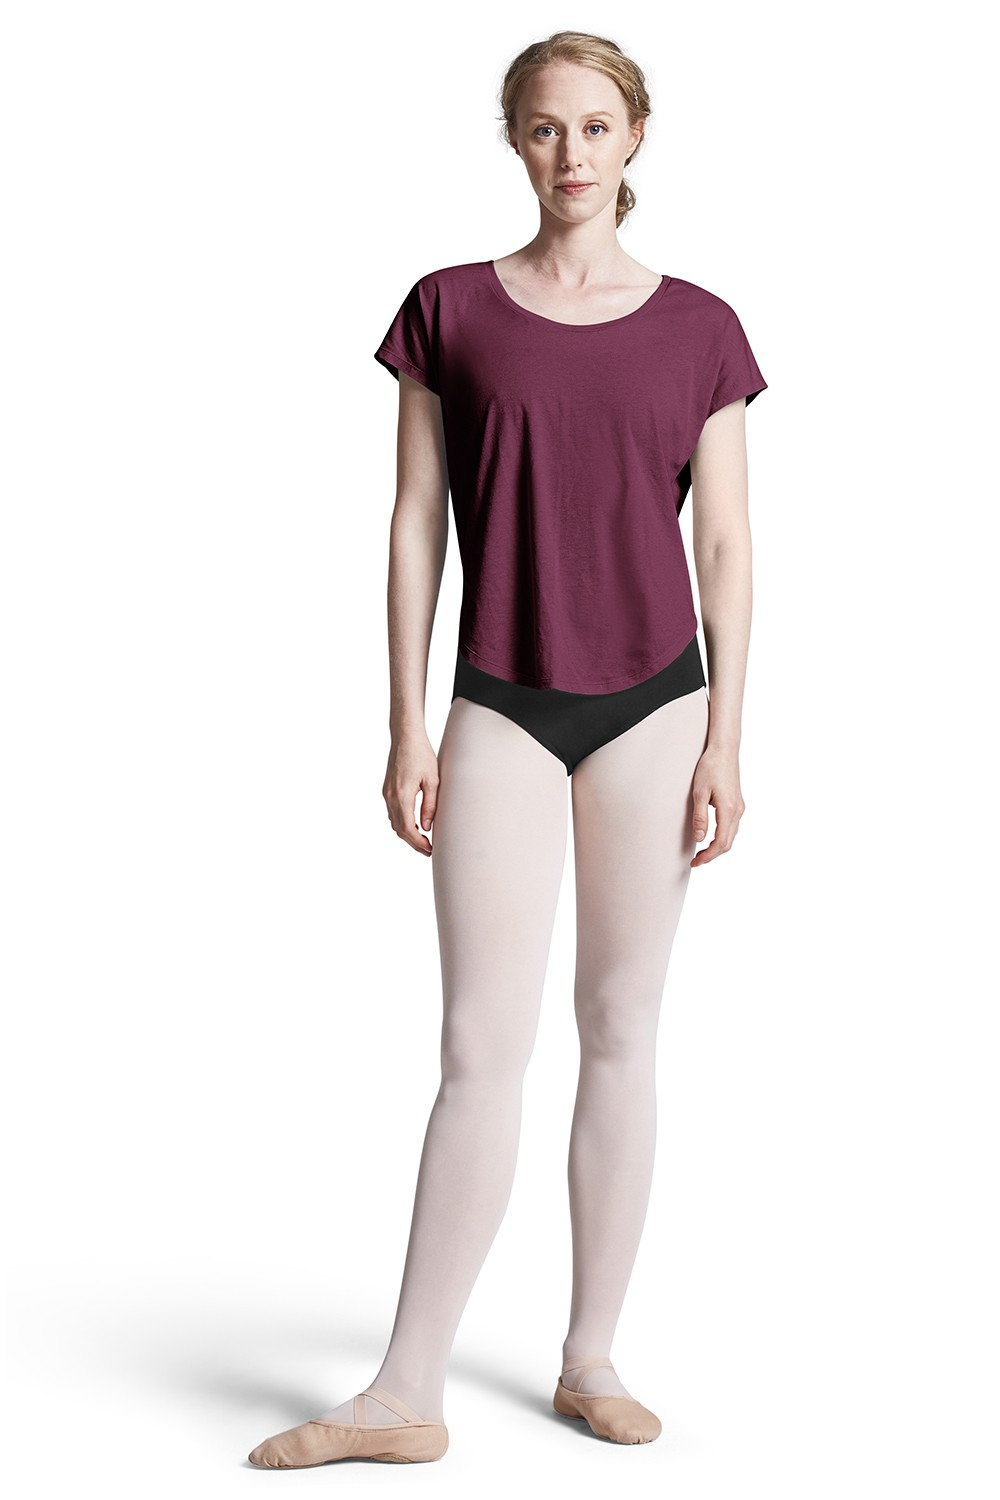 Boatneck T-shirt Women's Dance Tops